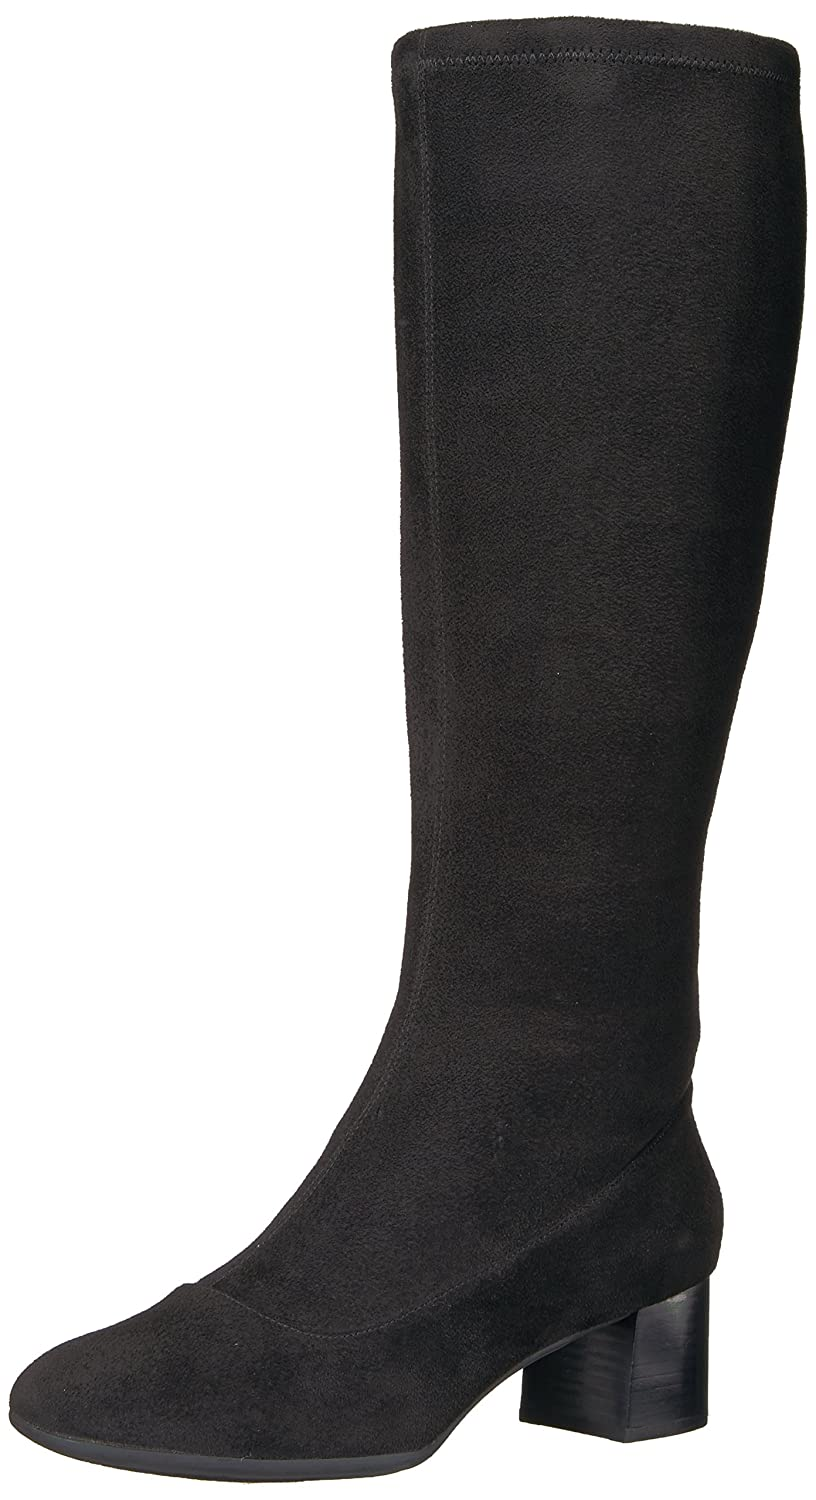 Rockport Women's Total Motion Novalie High Riding Boot B06X6G1WFZ 9.5 W US|Black